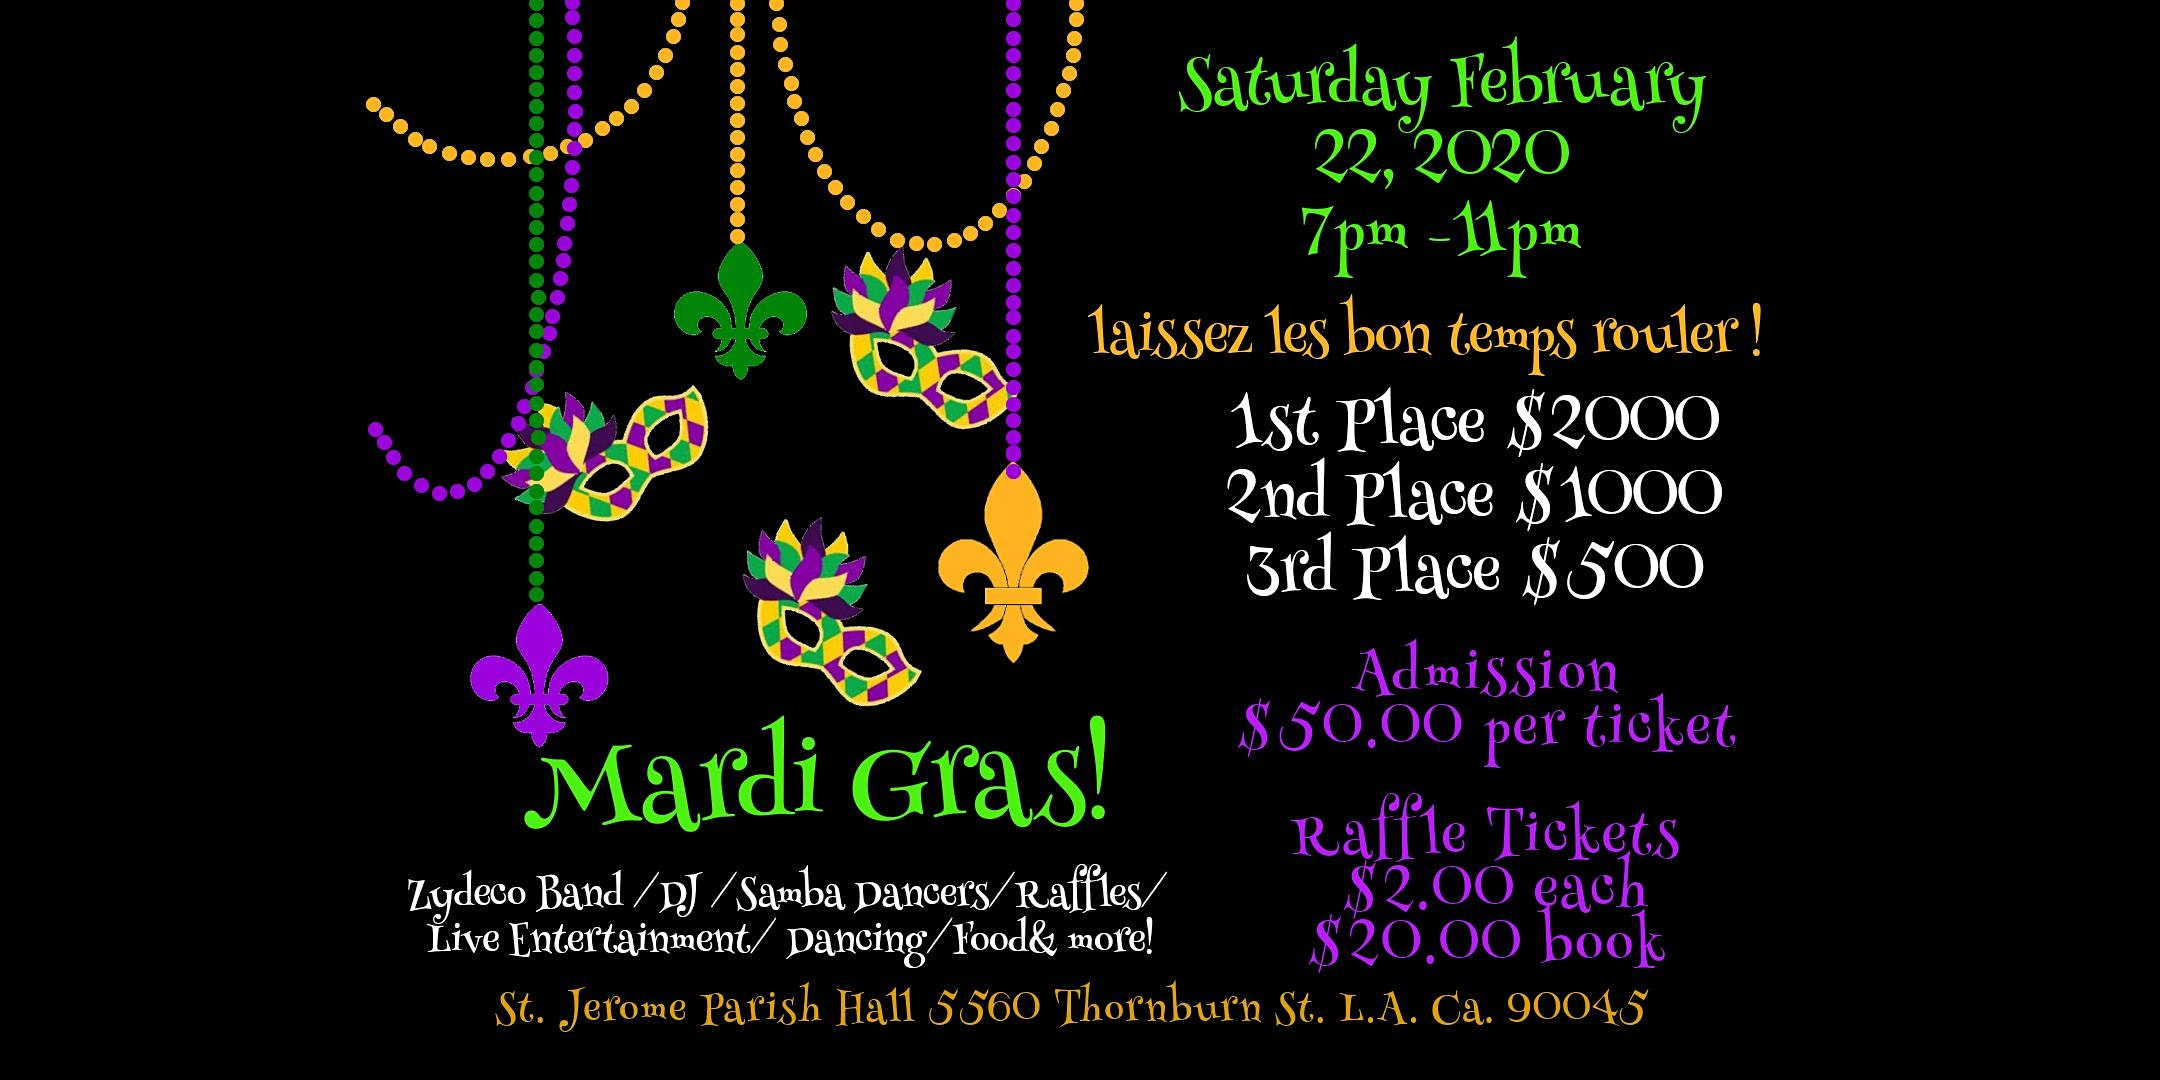 St. Jerome Annual Mardi Gras Fundraiser Party!